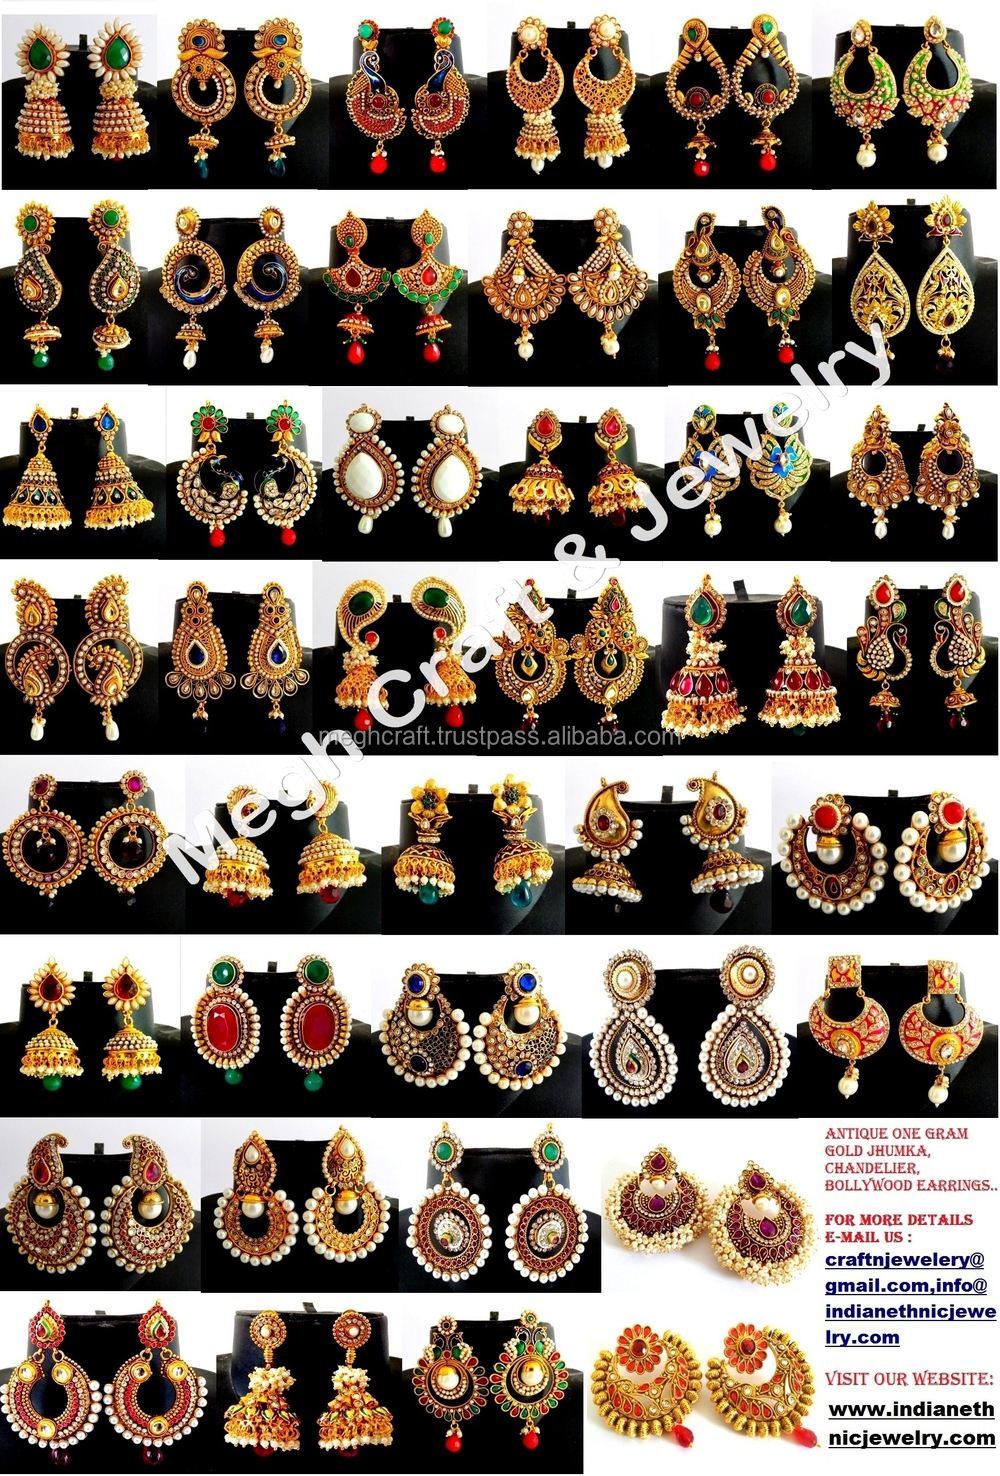 b444e38f66 Wholesale Indian Ethnic Earring - One Gram Gold Jewelry -south ...